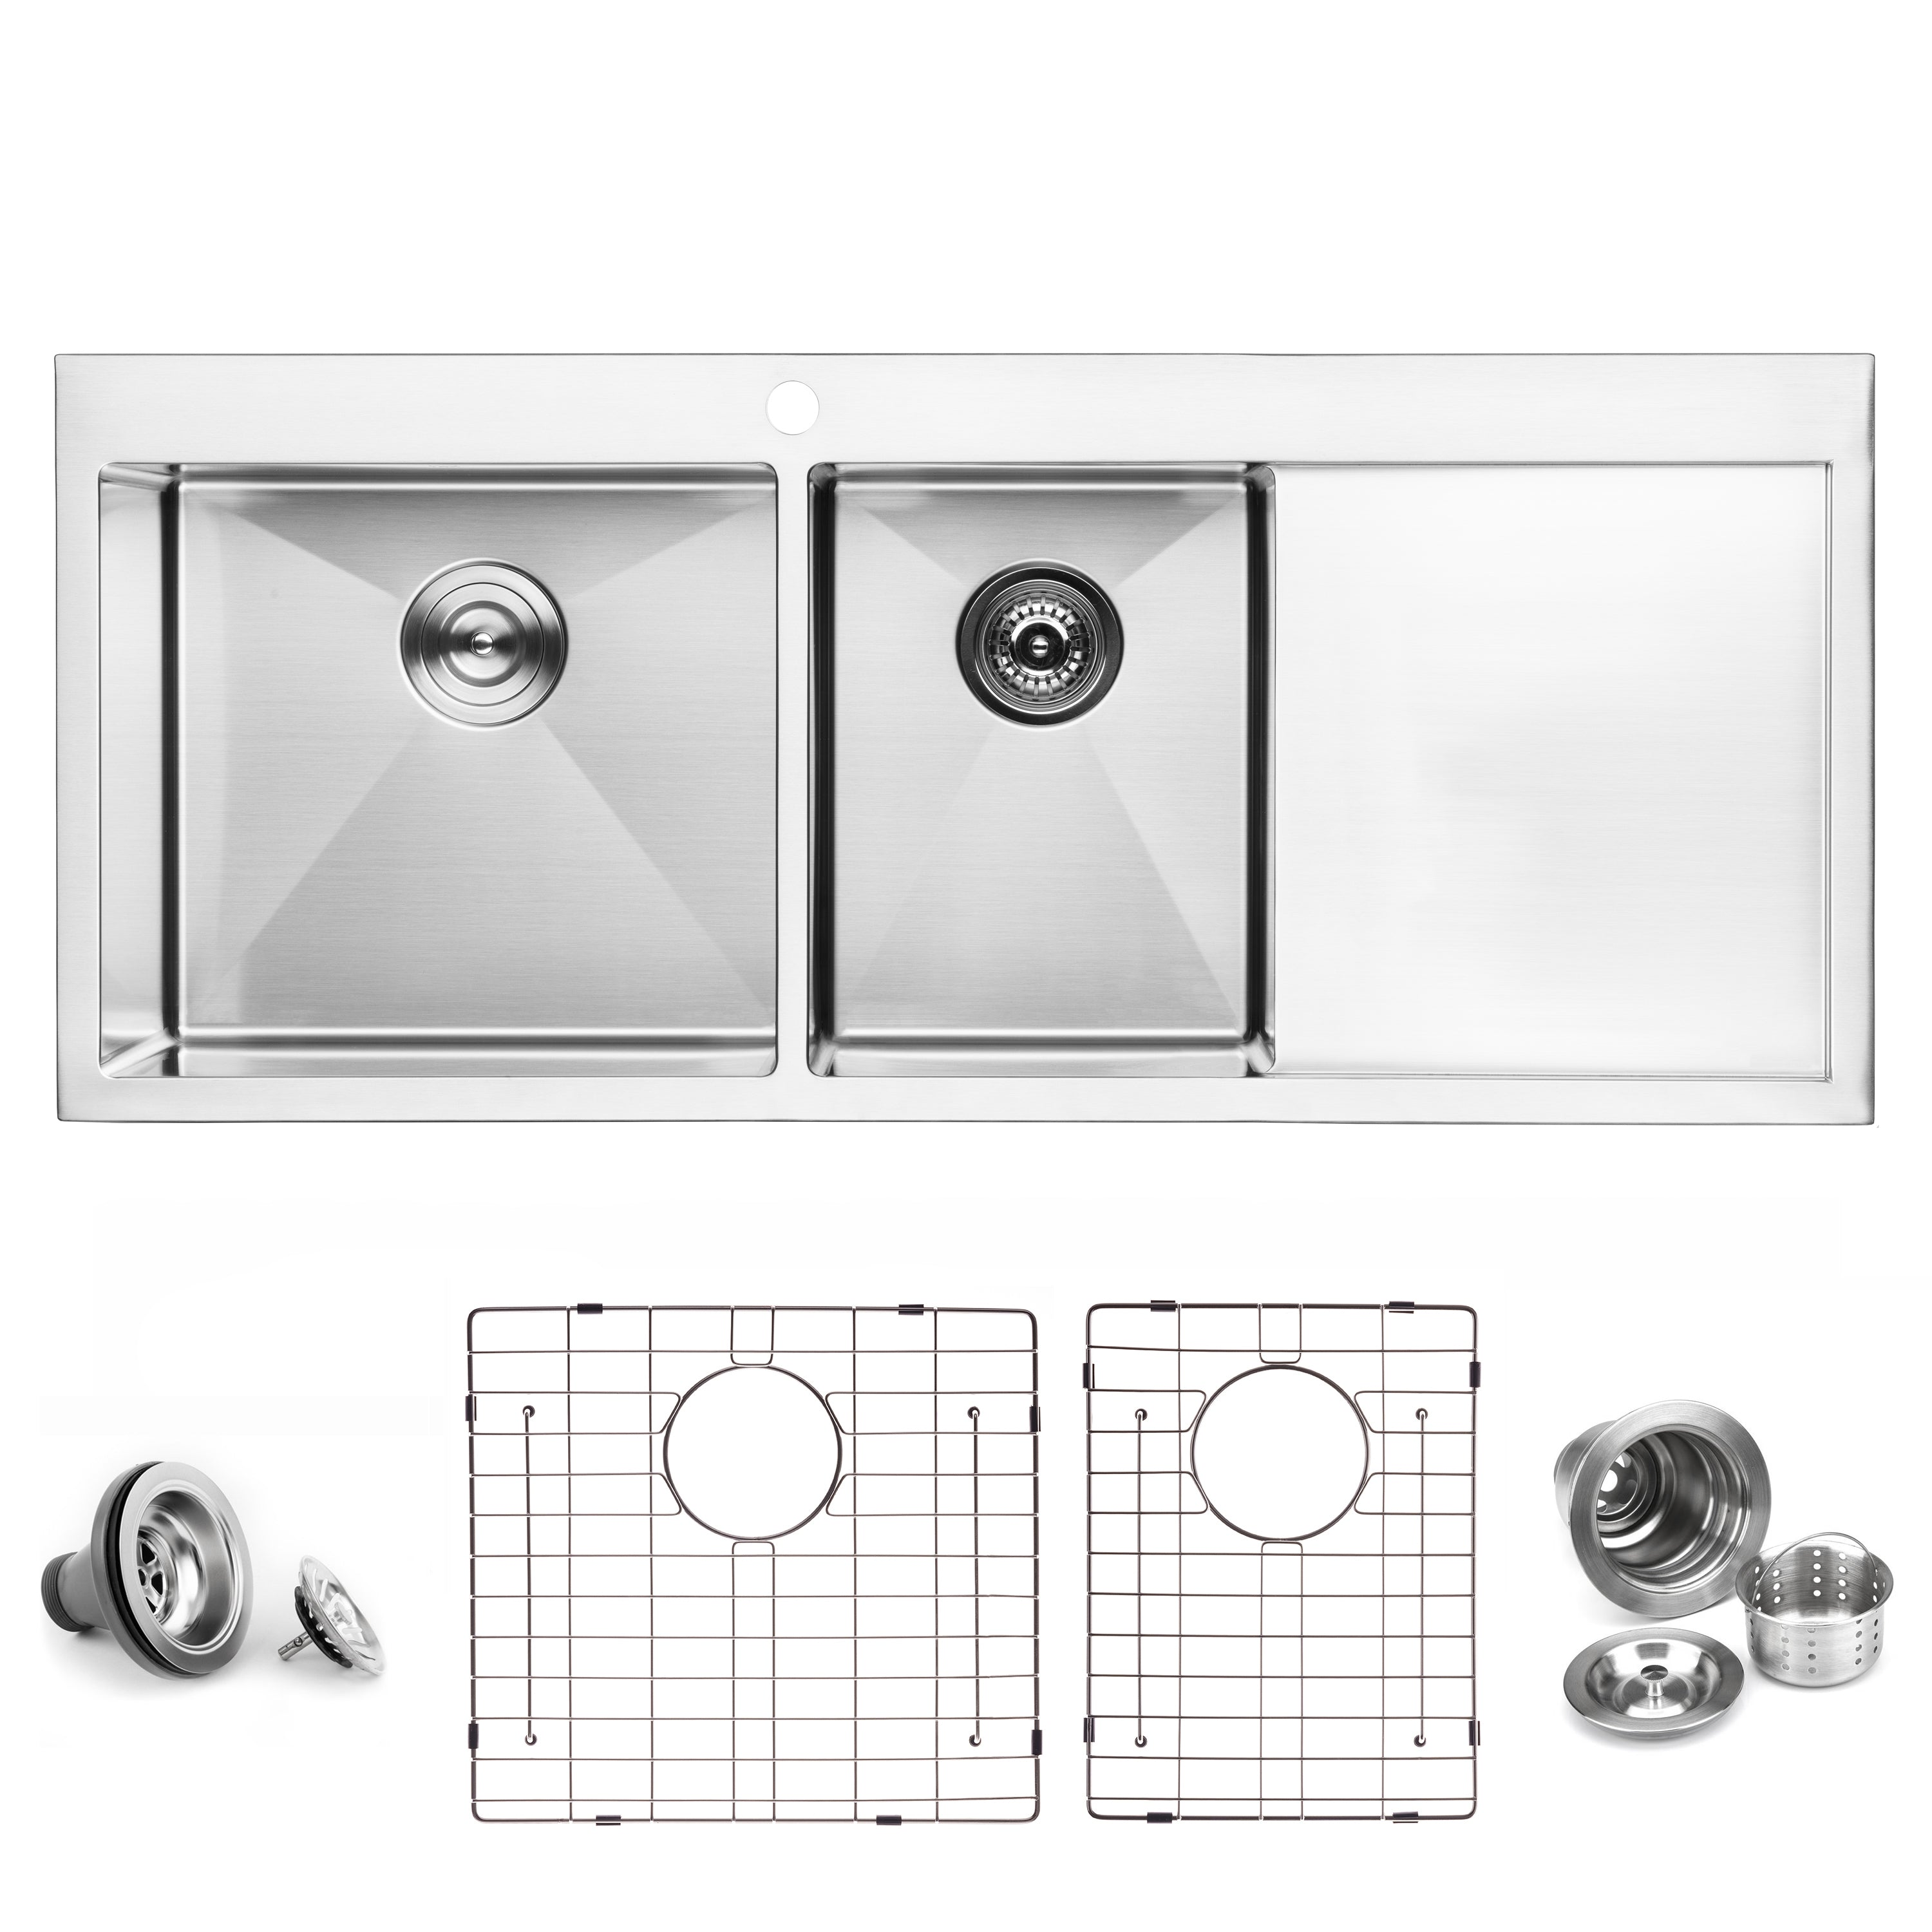 Bai 1235 Handmade 48 Inch Top Mount Double Bowl With Drainboard 16 Gauge Stainless Steel Kitchen Sink Megabai